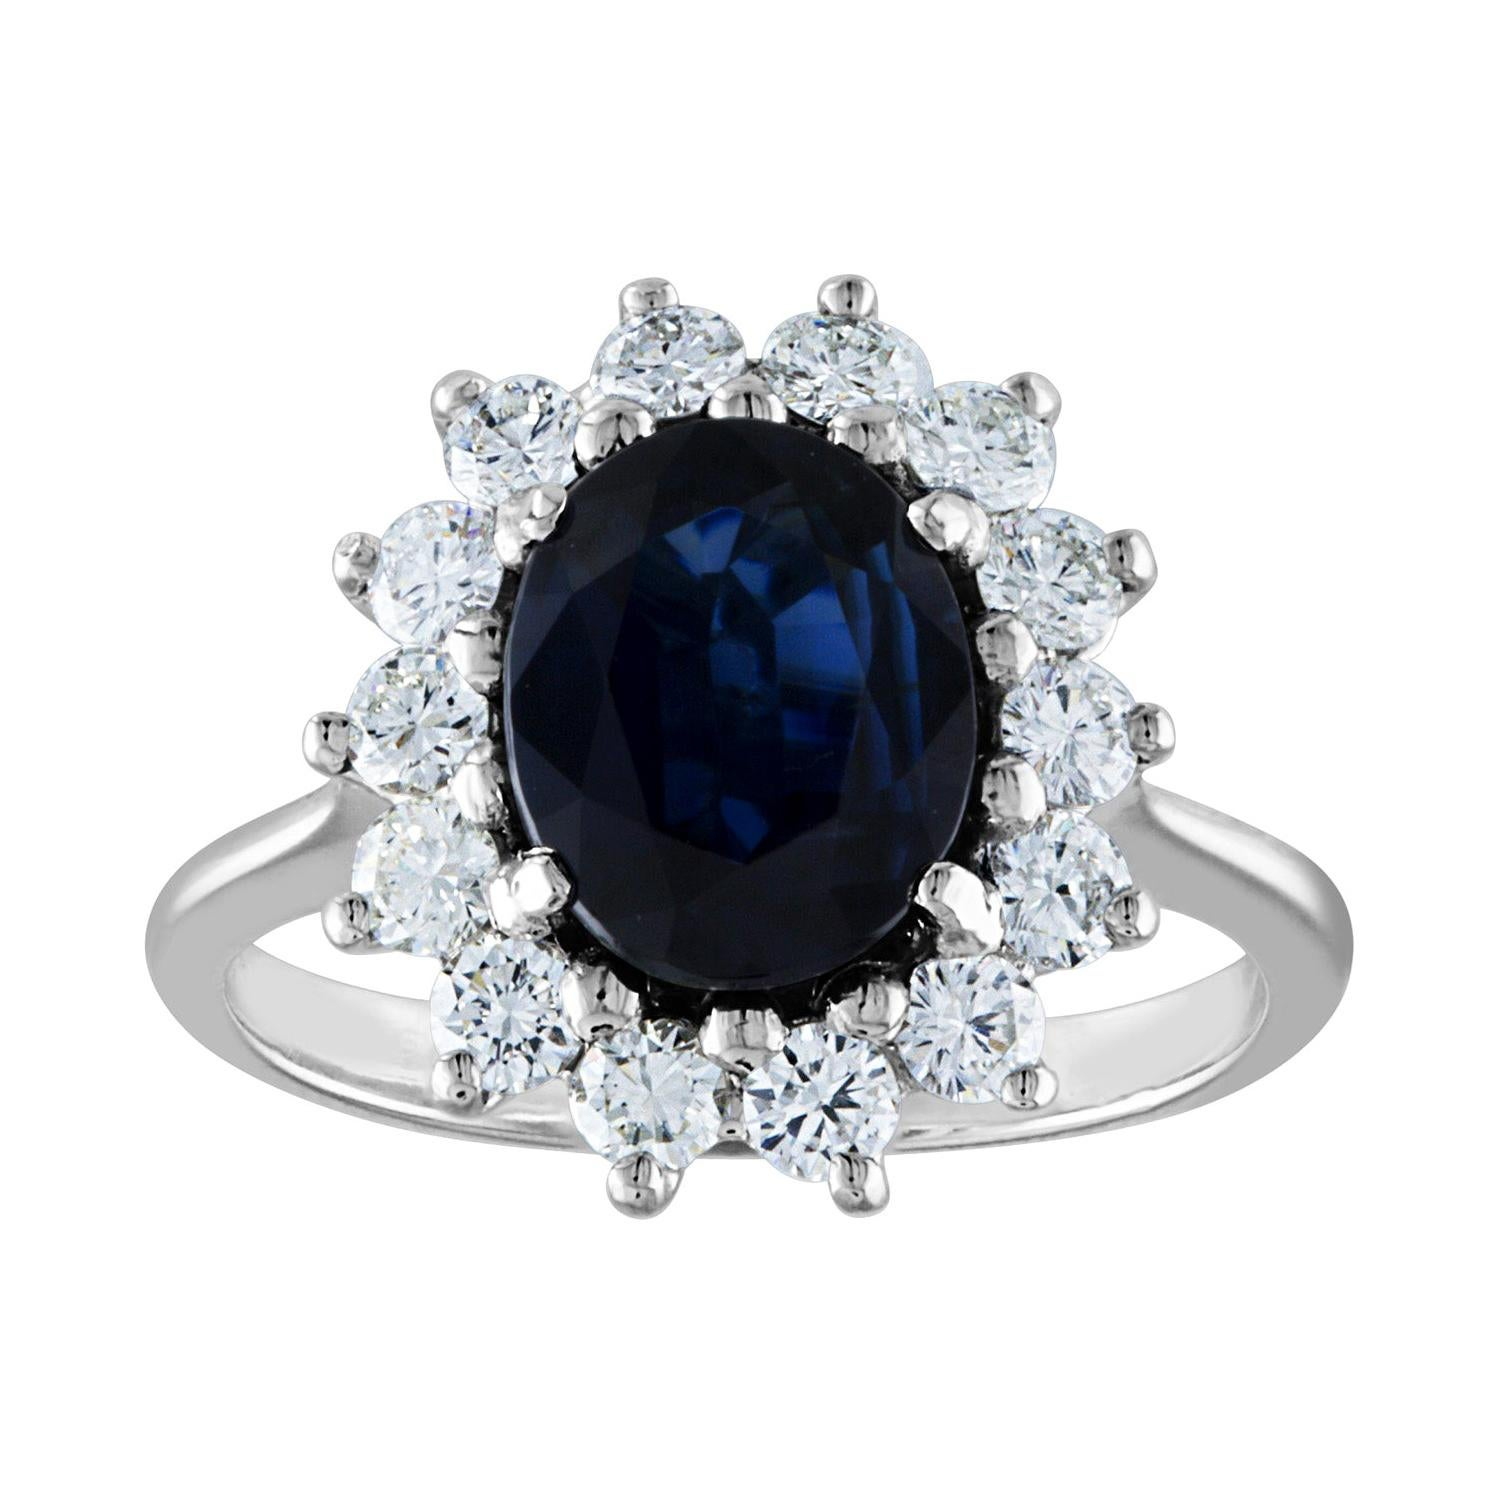 AGL Certified 2.05 Carat No Heat Oval Blue Sapphire and Diamond Gold Ring